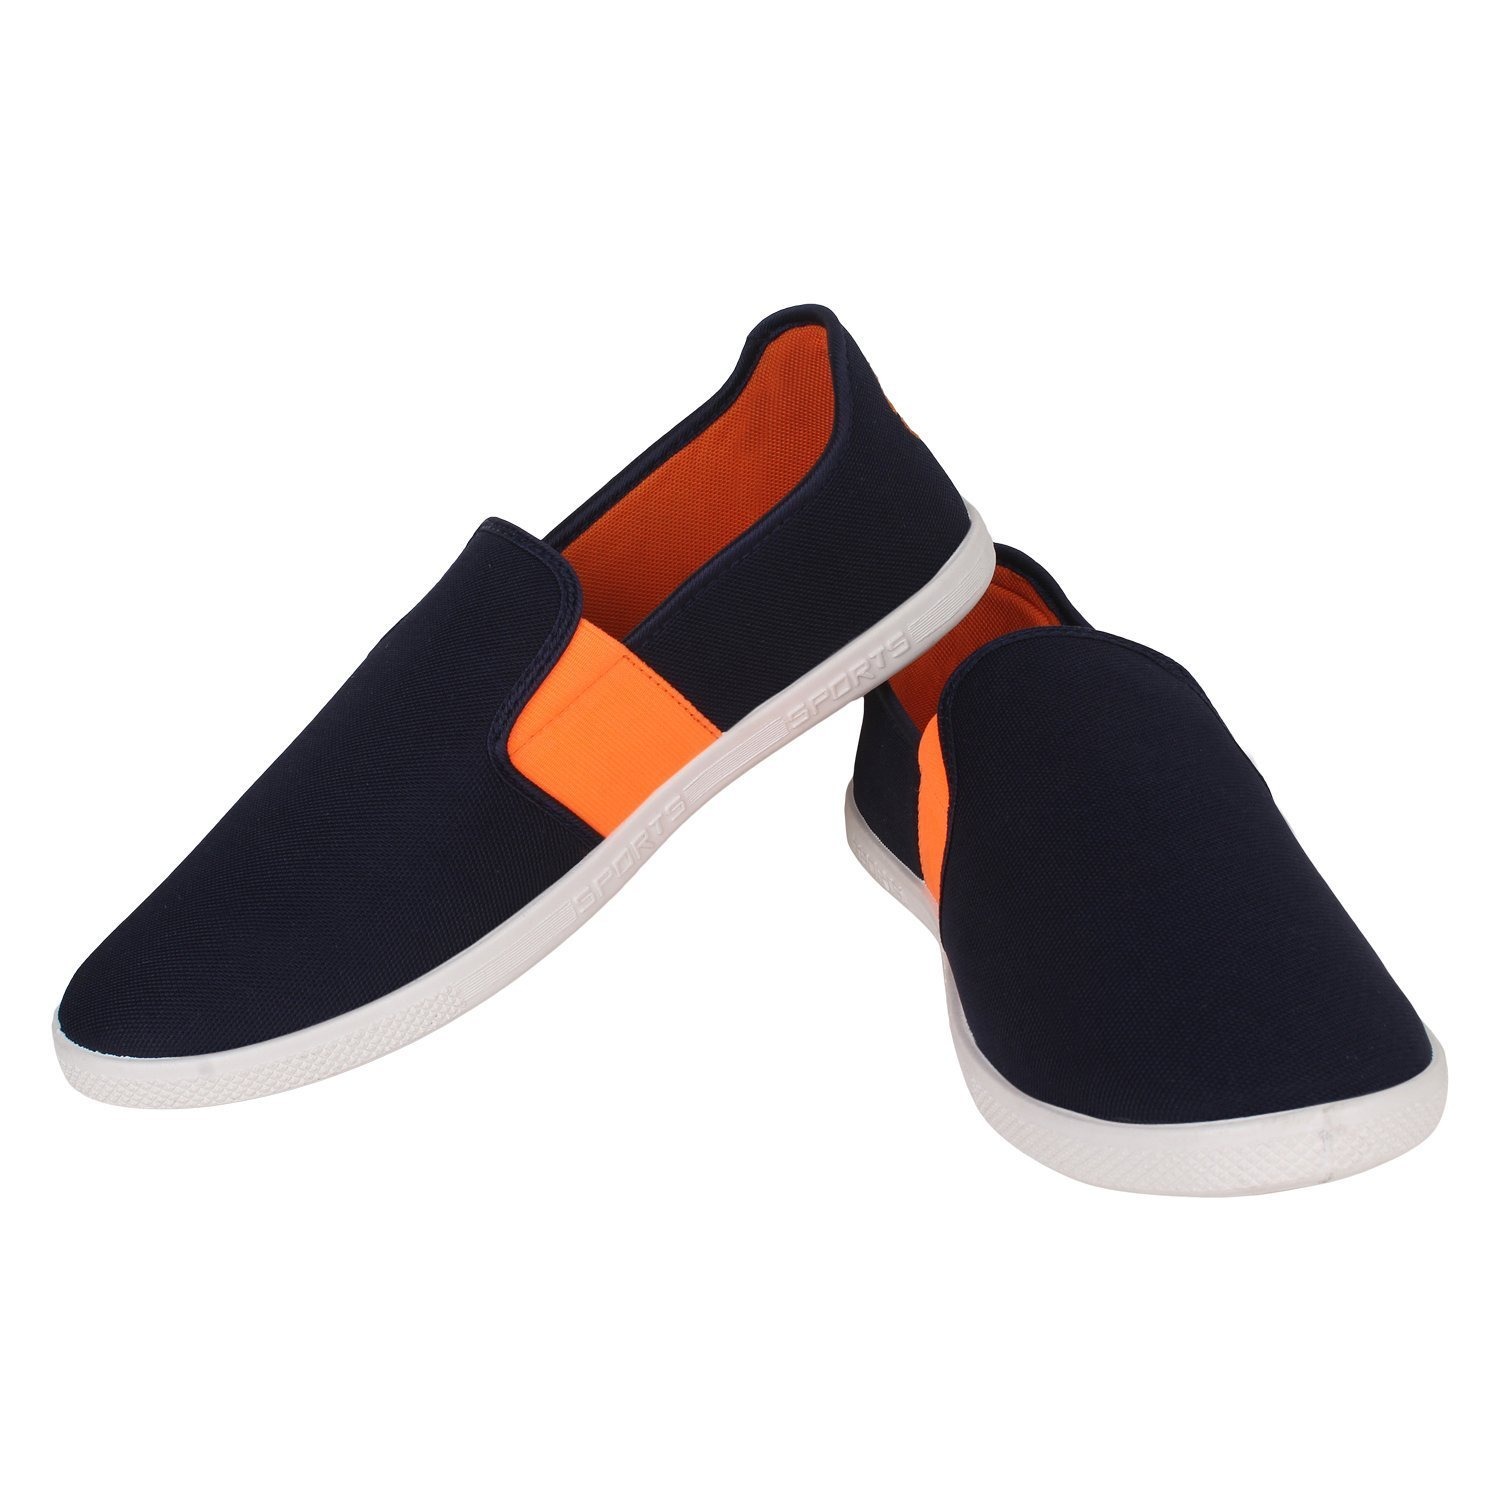 Men Loafers & Moccasins – Earton,Globalite low price